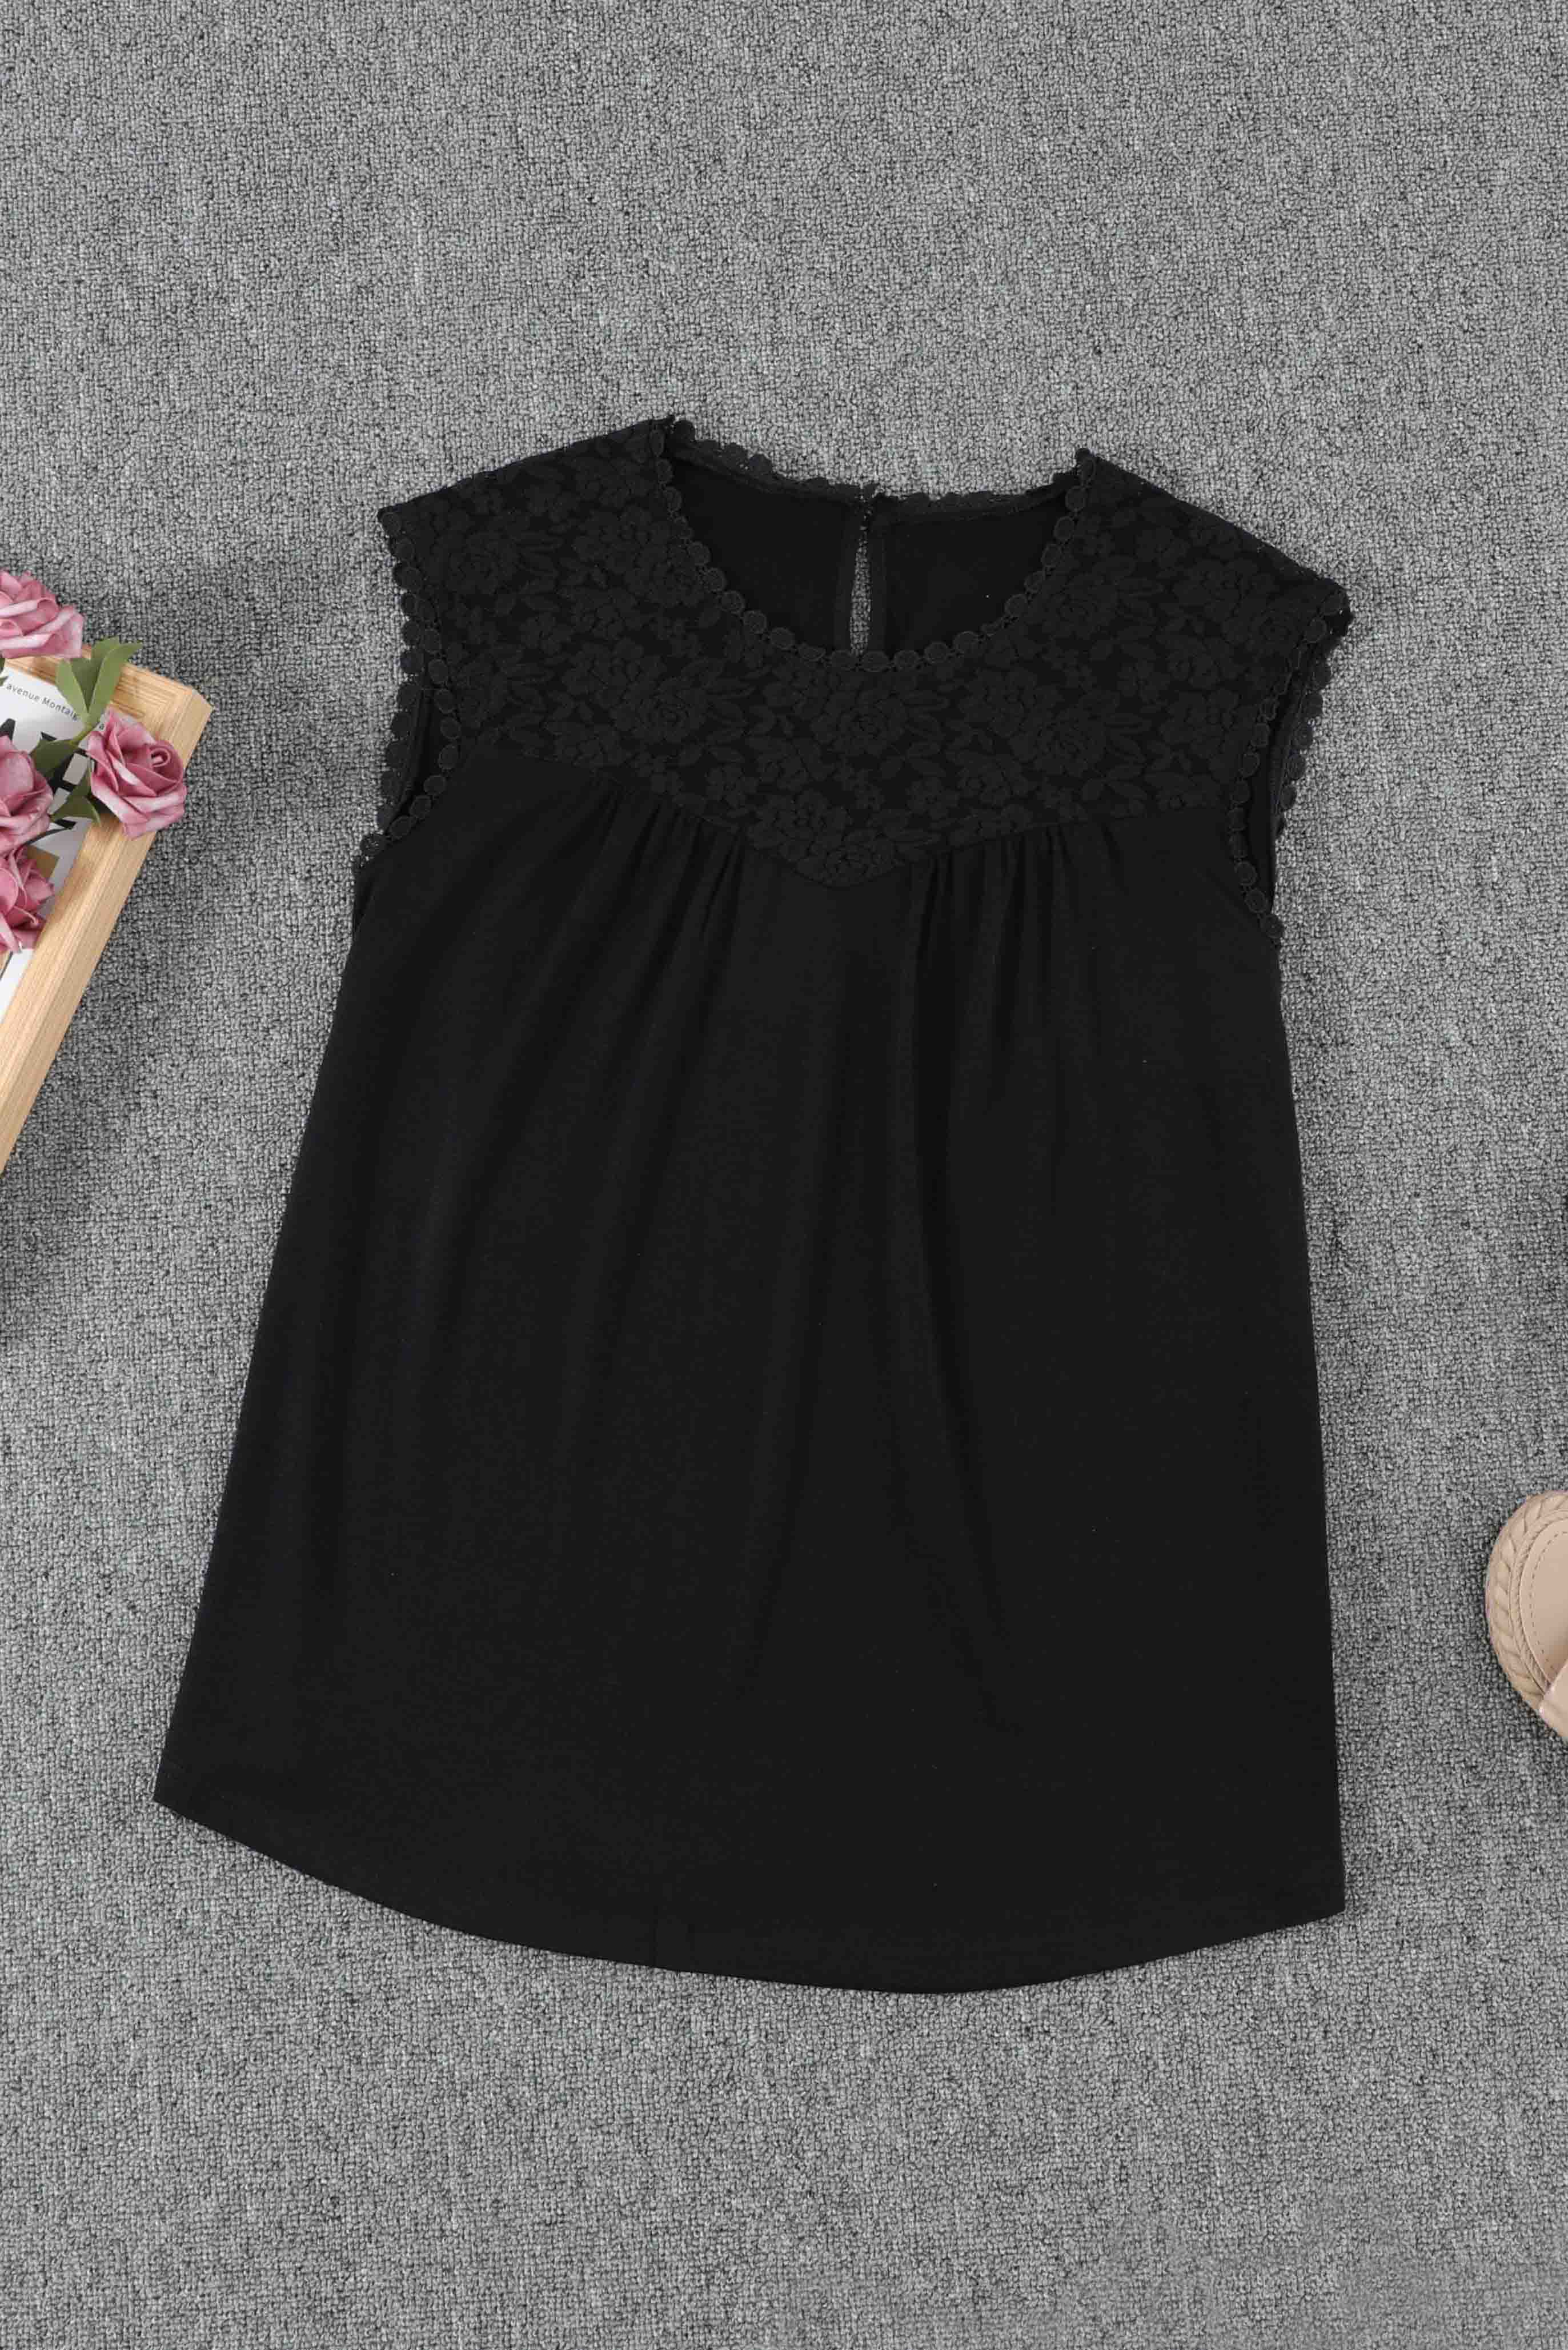 Black Sleeveless Top with Lace Detail - JT's Designer Fashion